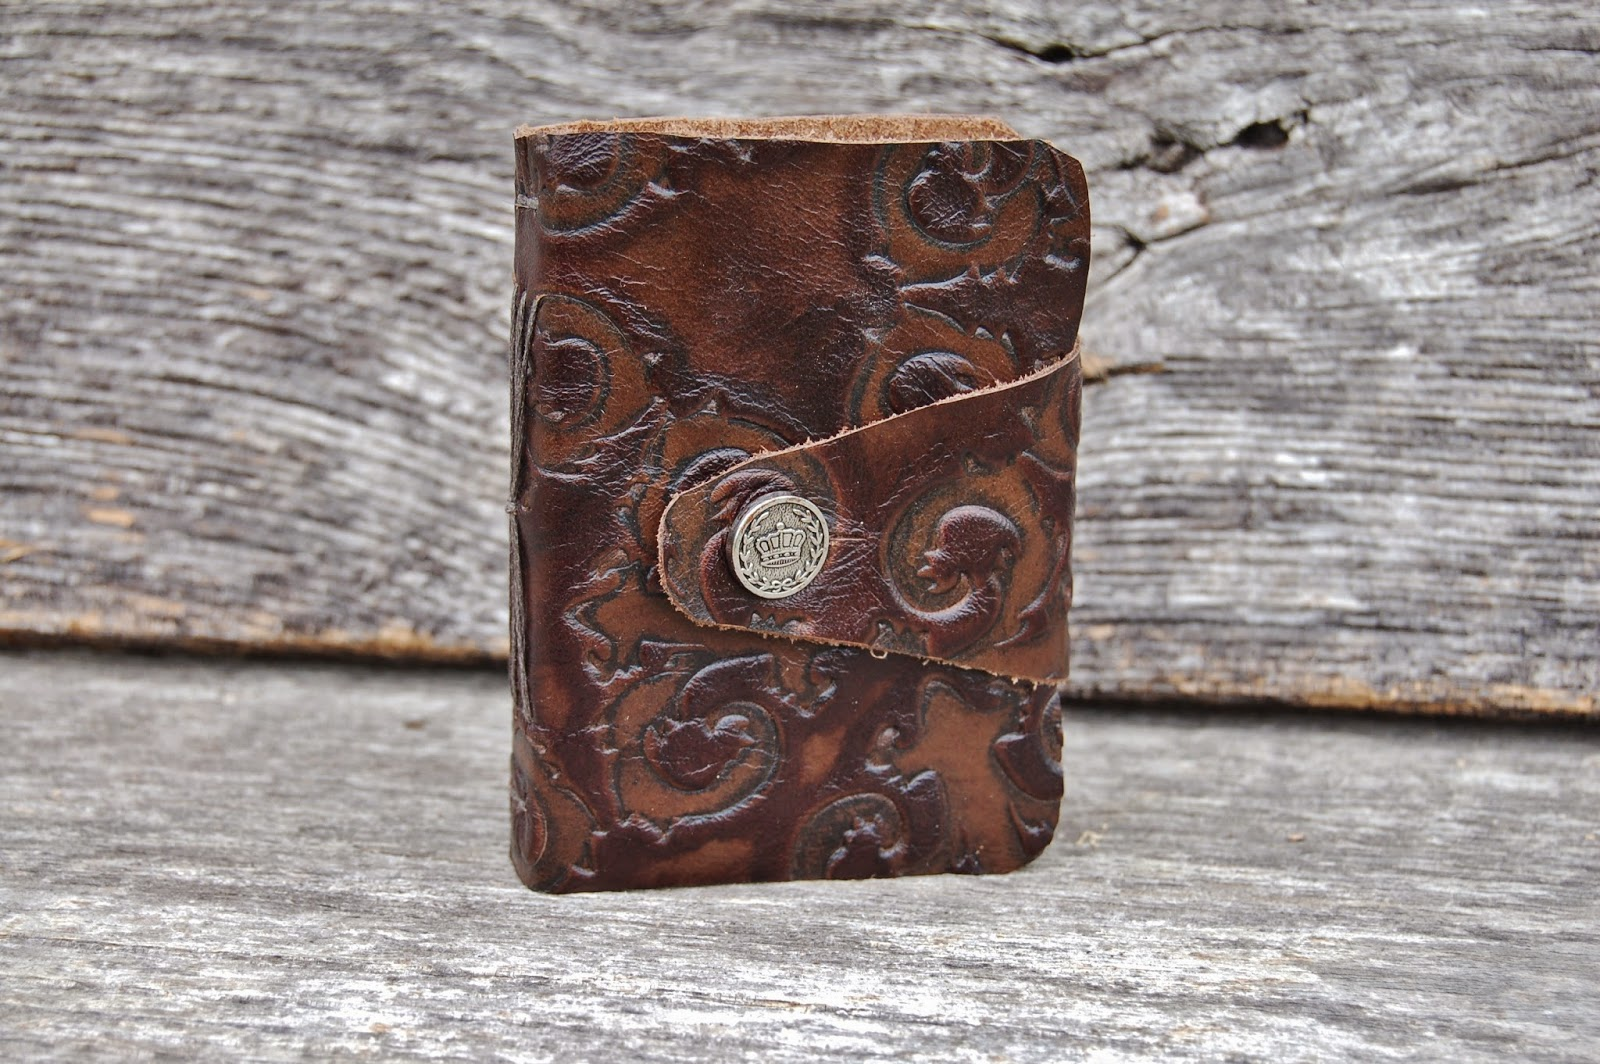 https://www.etsy.com/listing/206162010/royal-wanderer-travelers-pocket-journal?ref=listing-shop-header-3